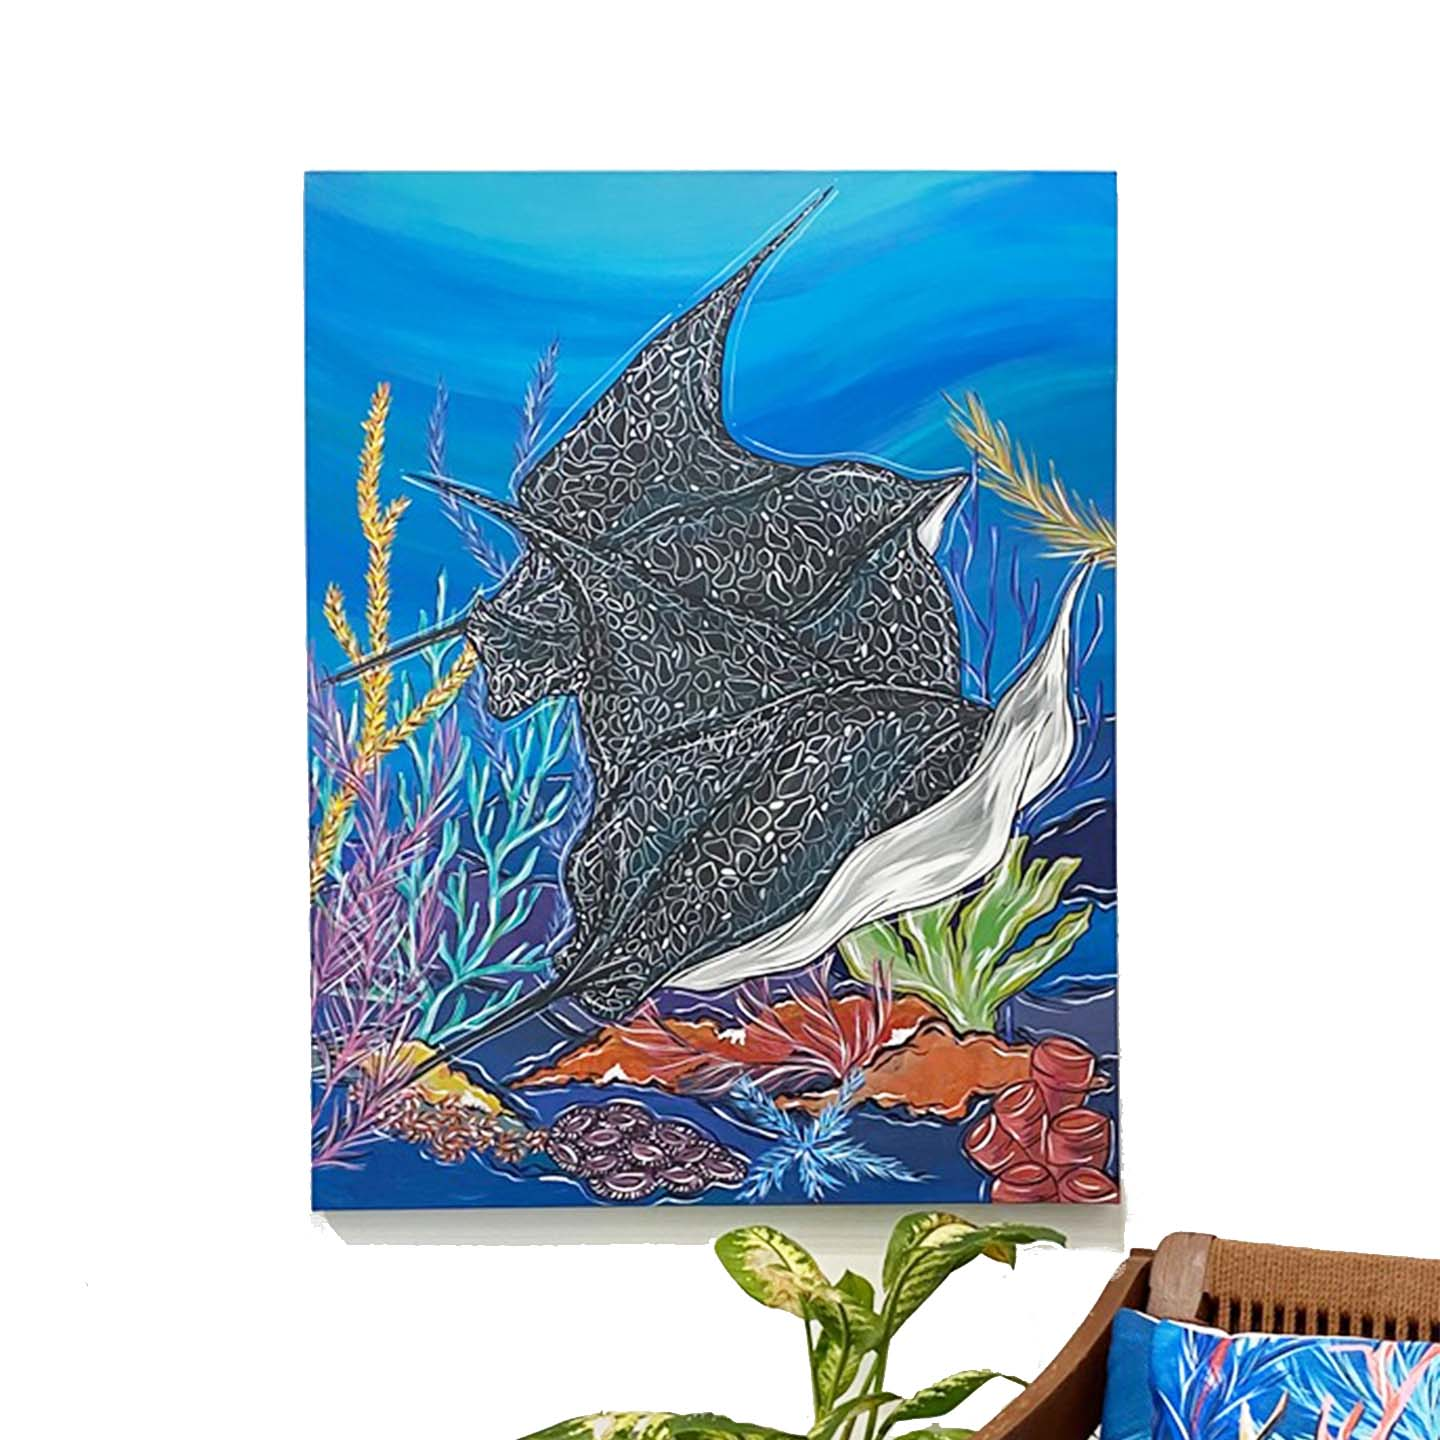 Self-taught, Cecil possesses a unique flair for capturing marine life with colorful personalities.